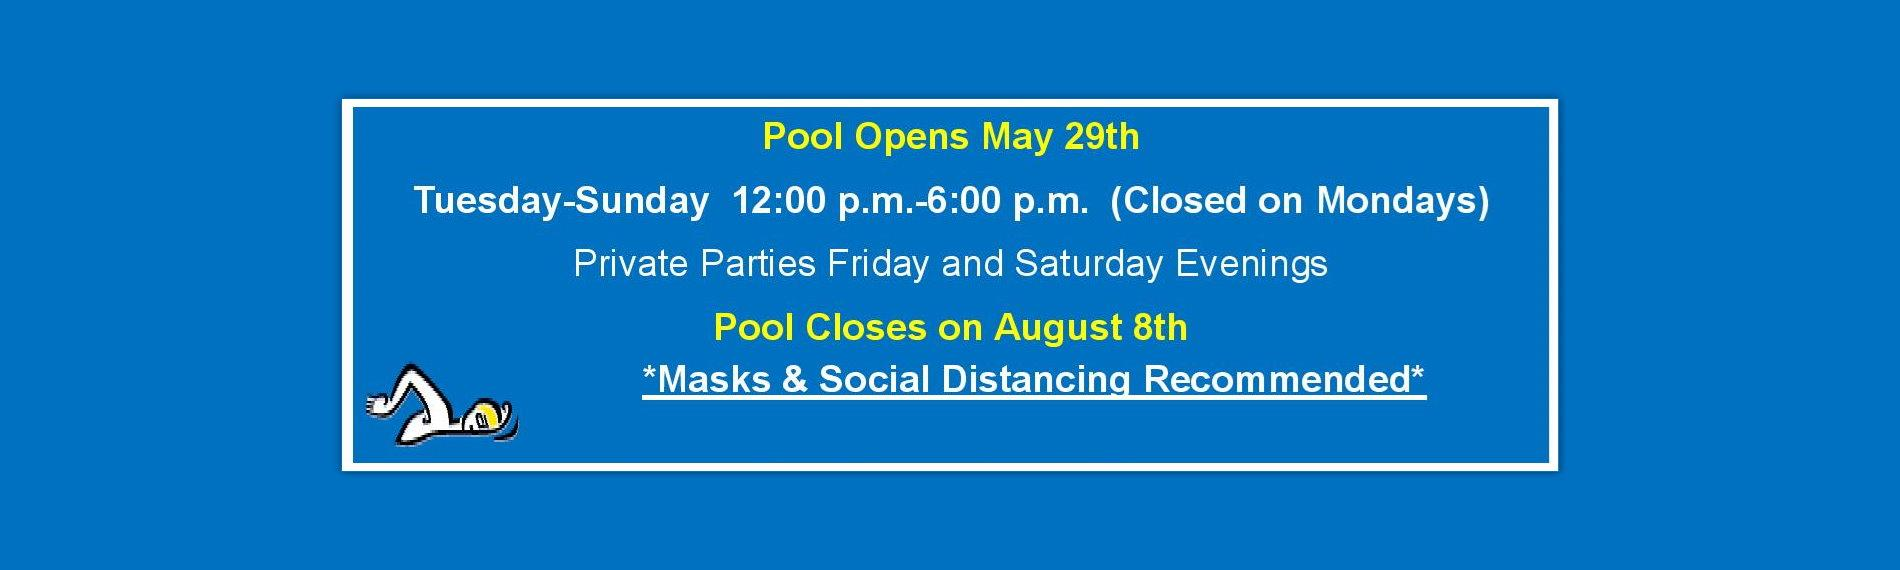 Pool Opens May 29th